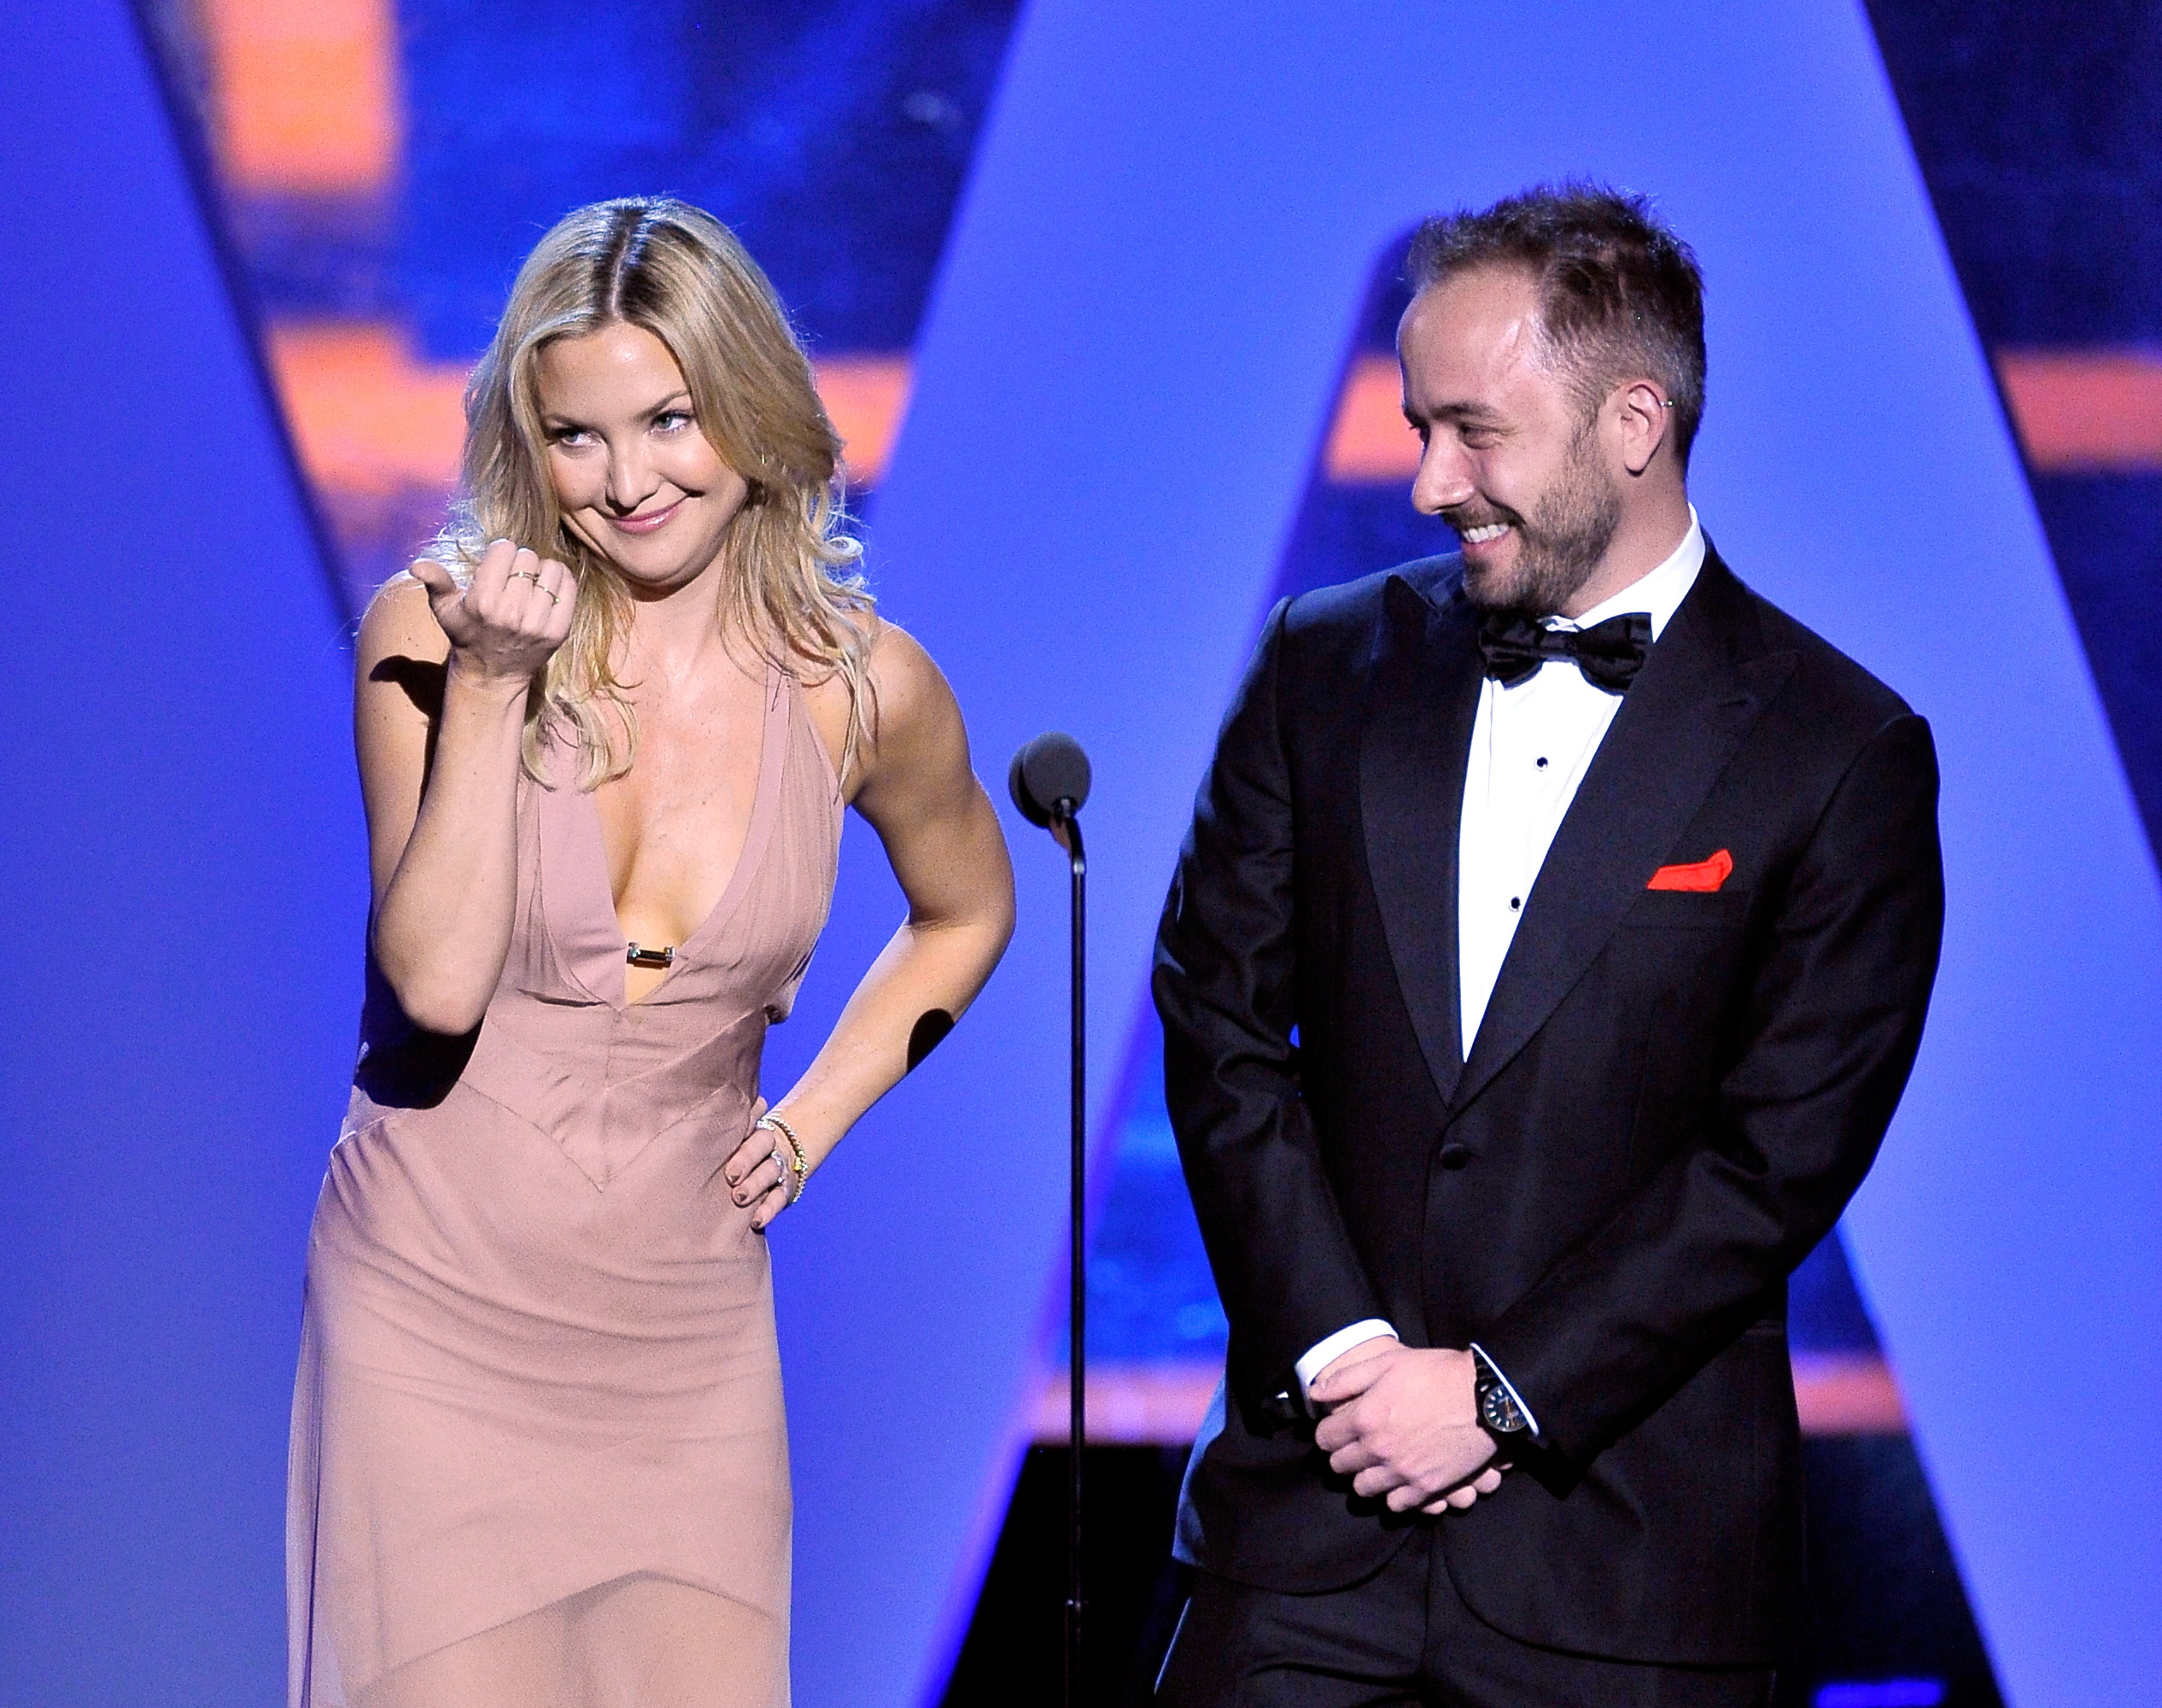 Actress Kate Hudson and Founder/CEO of Dropbox Drew Houston speak onstage during the 2016 Breakthrough Prize Ceremony on November 8, 2015 in Mountain View, California.